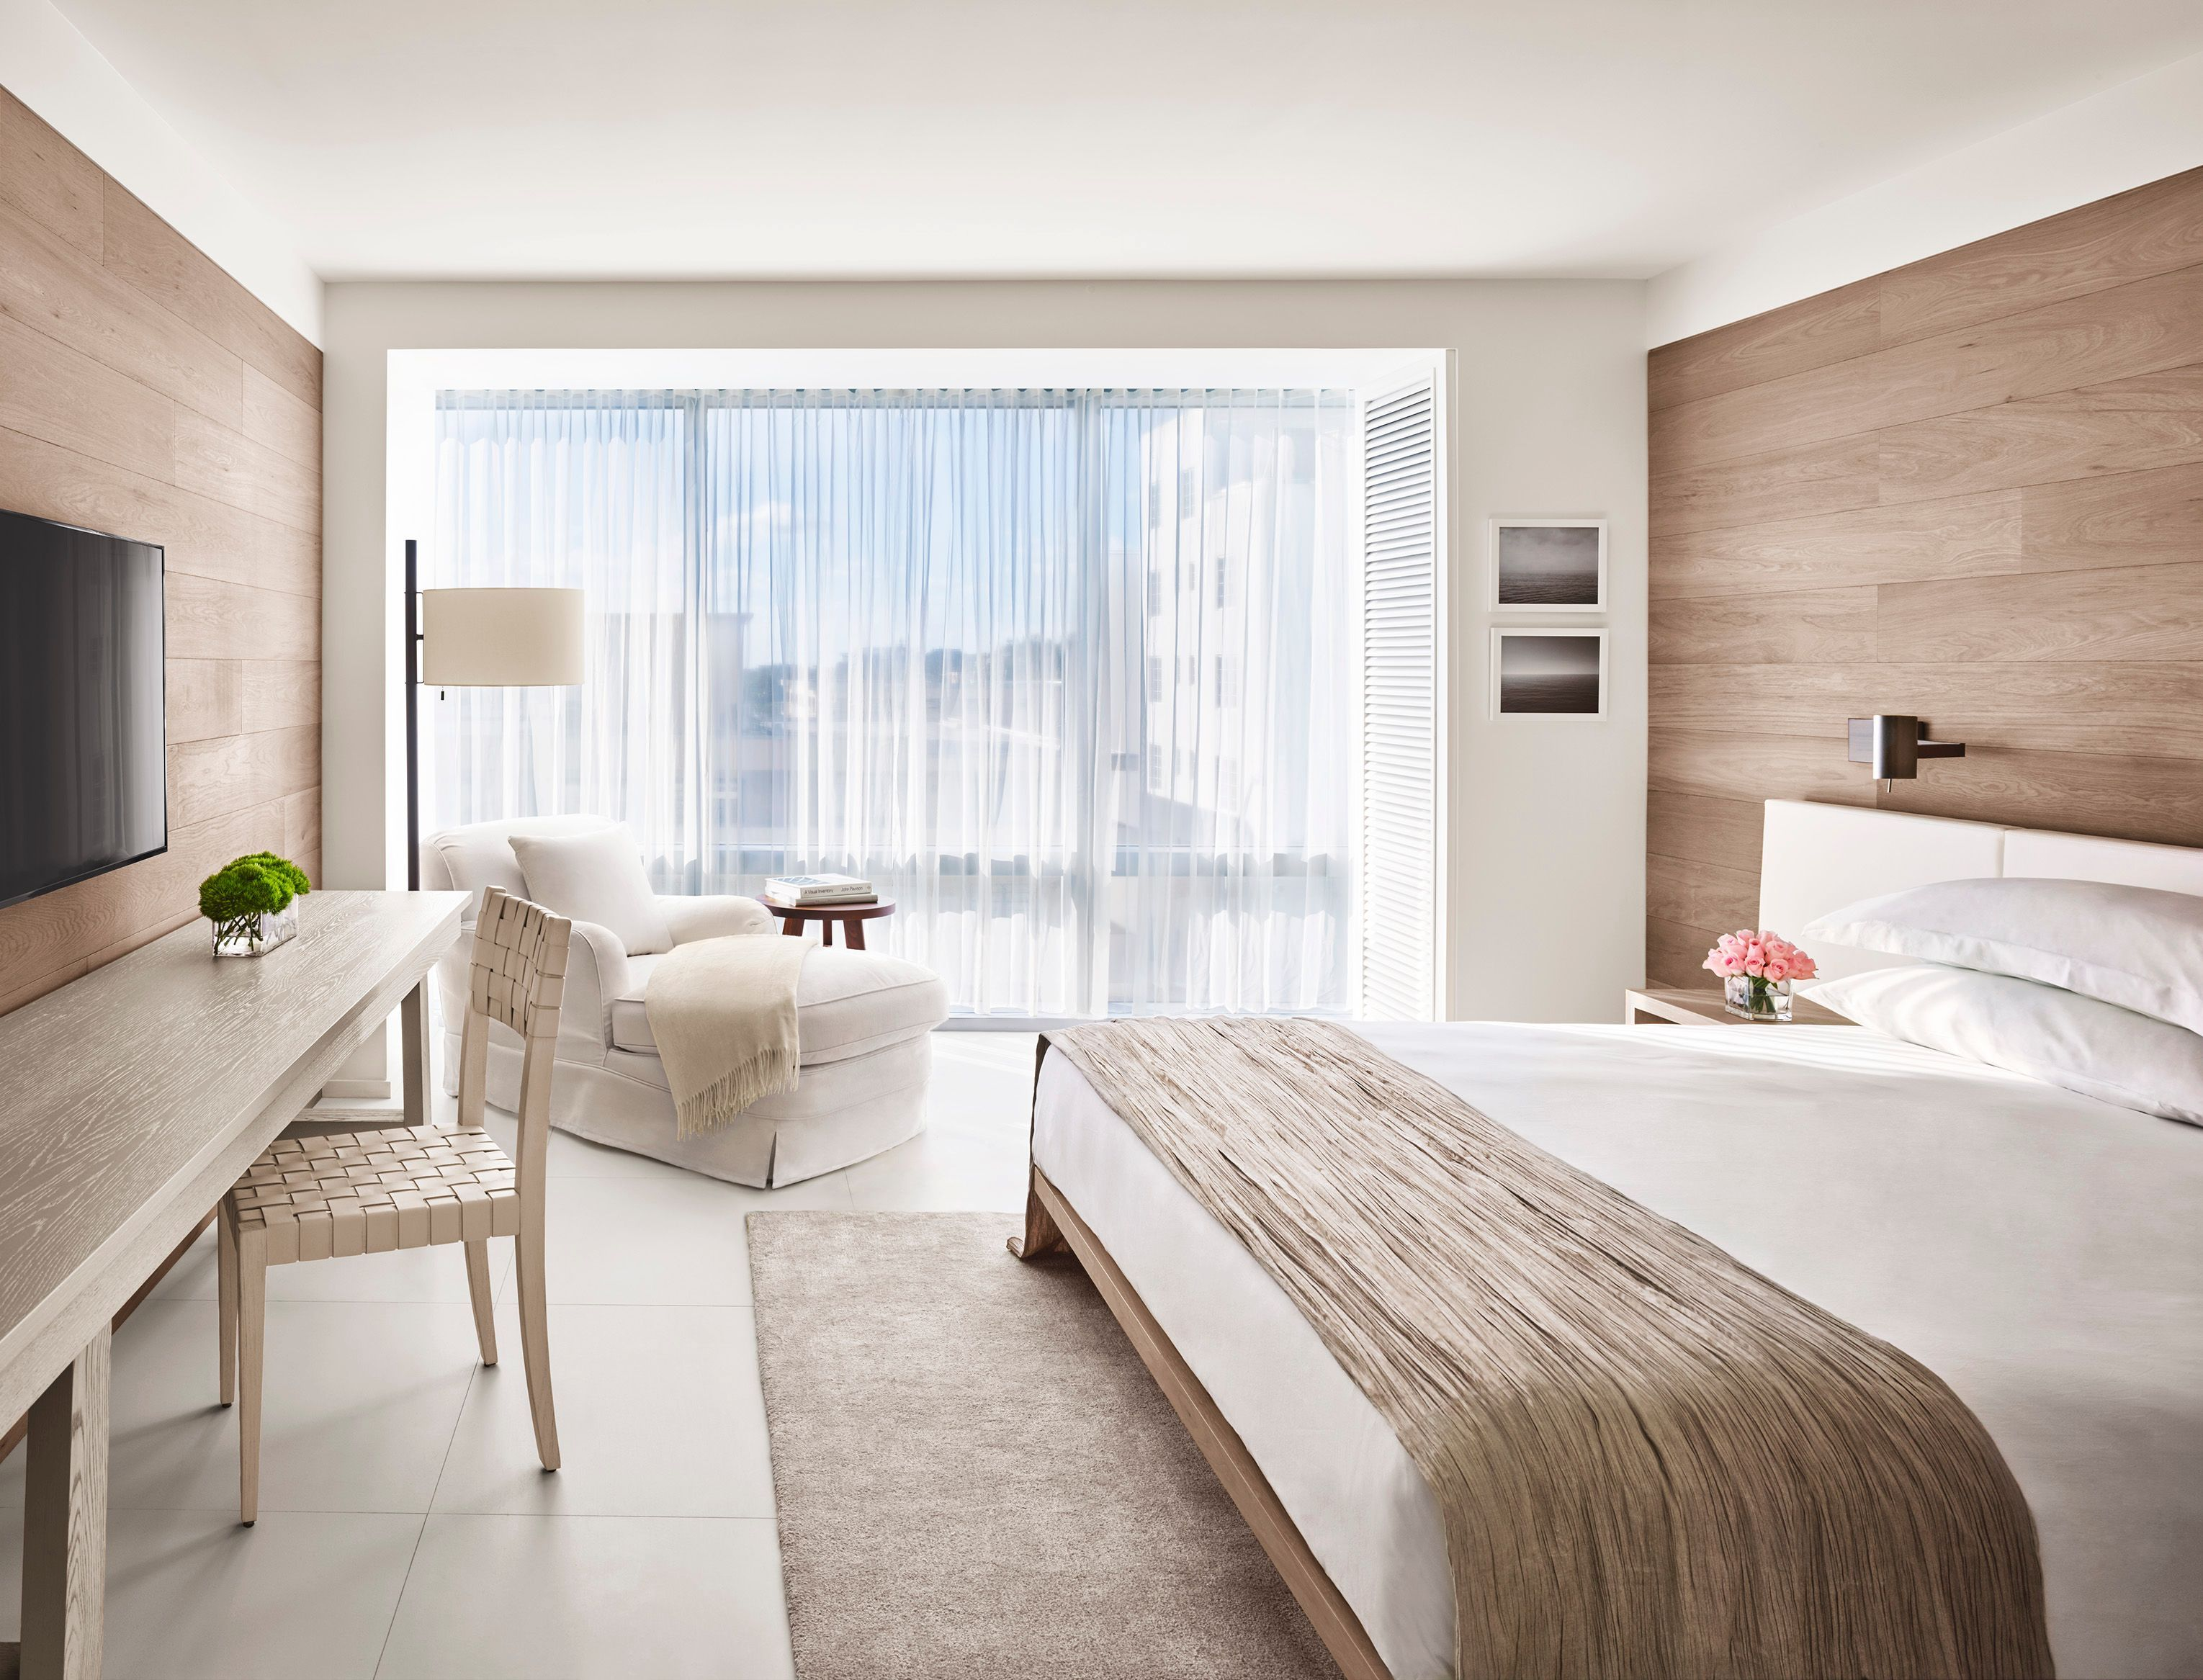 Yabu pushelberg the miami beach edition bedroom luxury for Hotel suite design